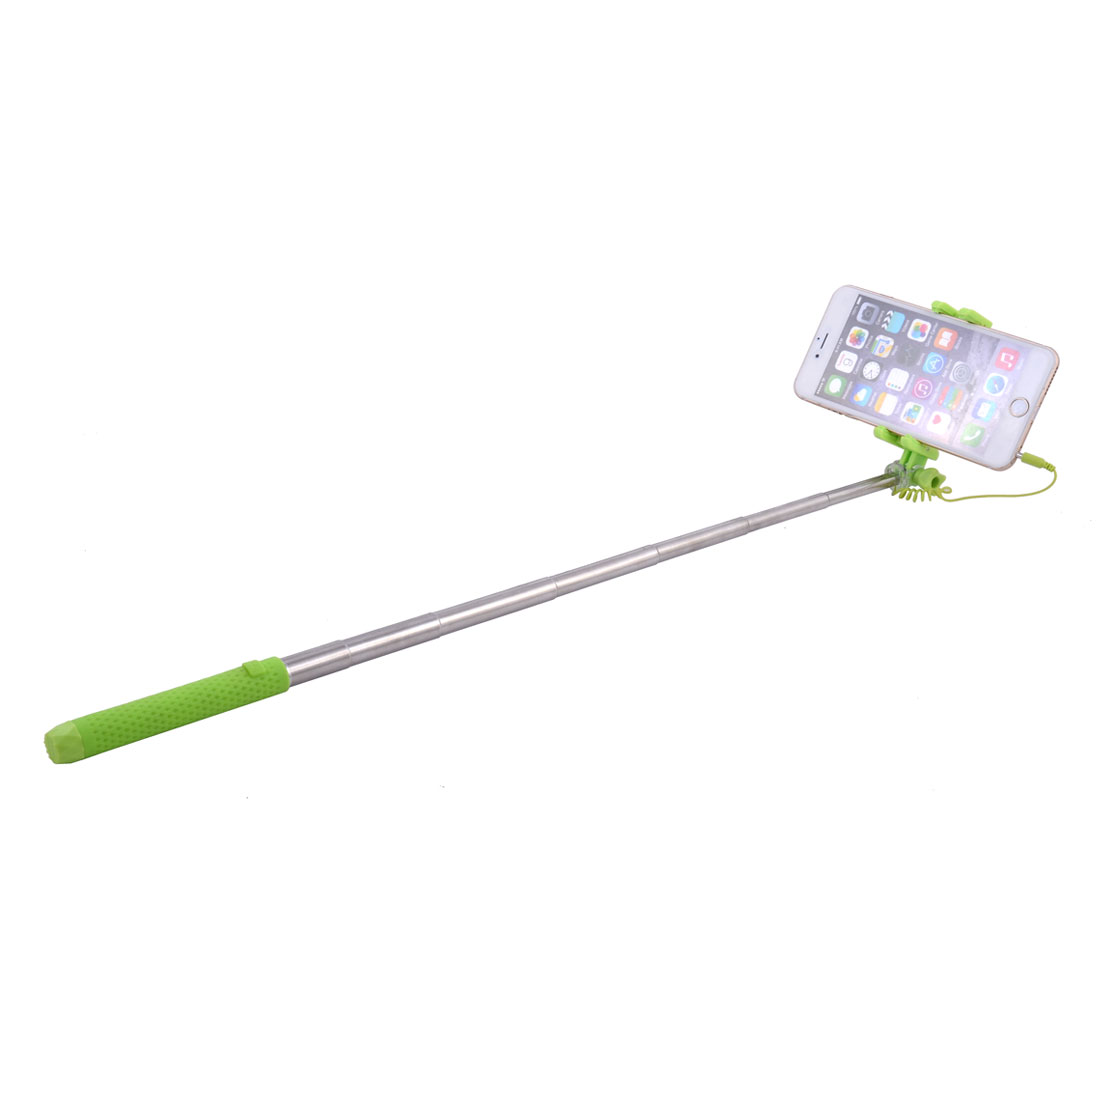 Plastic Cell Phone Holder Extendable Cable Take Pole Handheld Monopod Selfie Stick Green